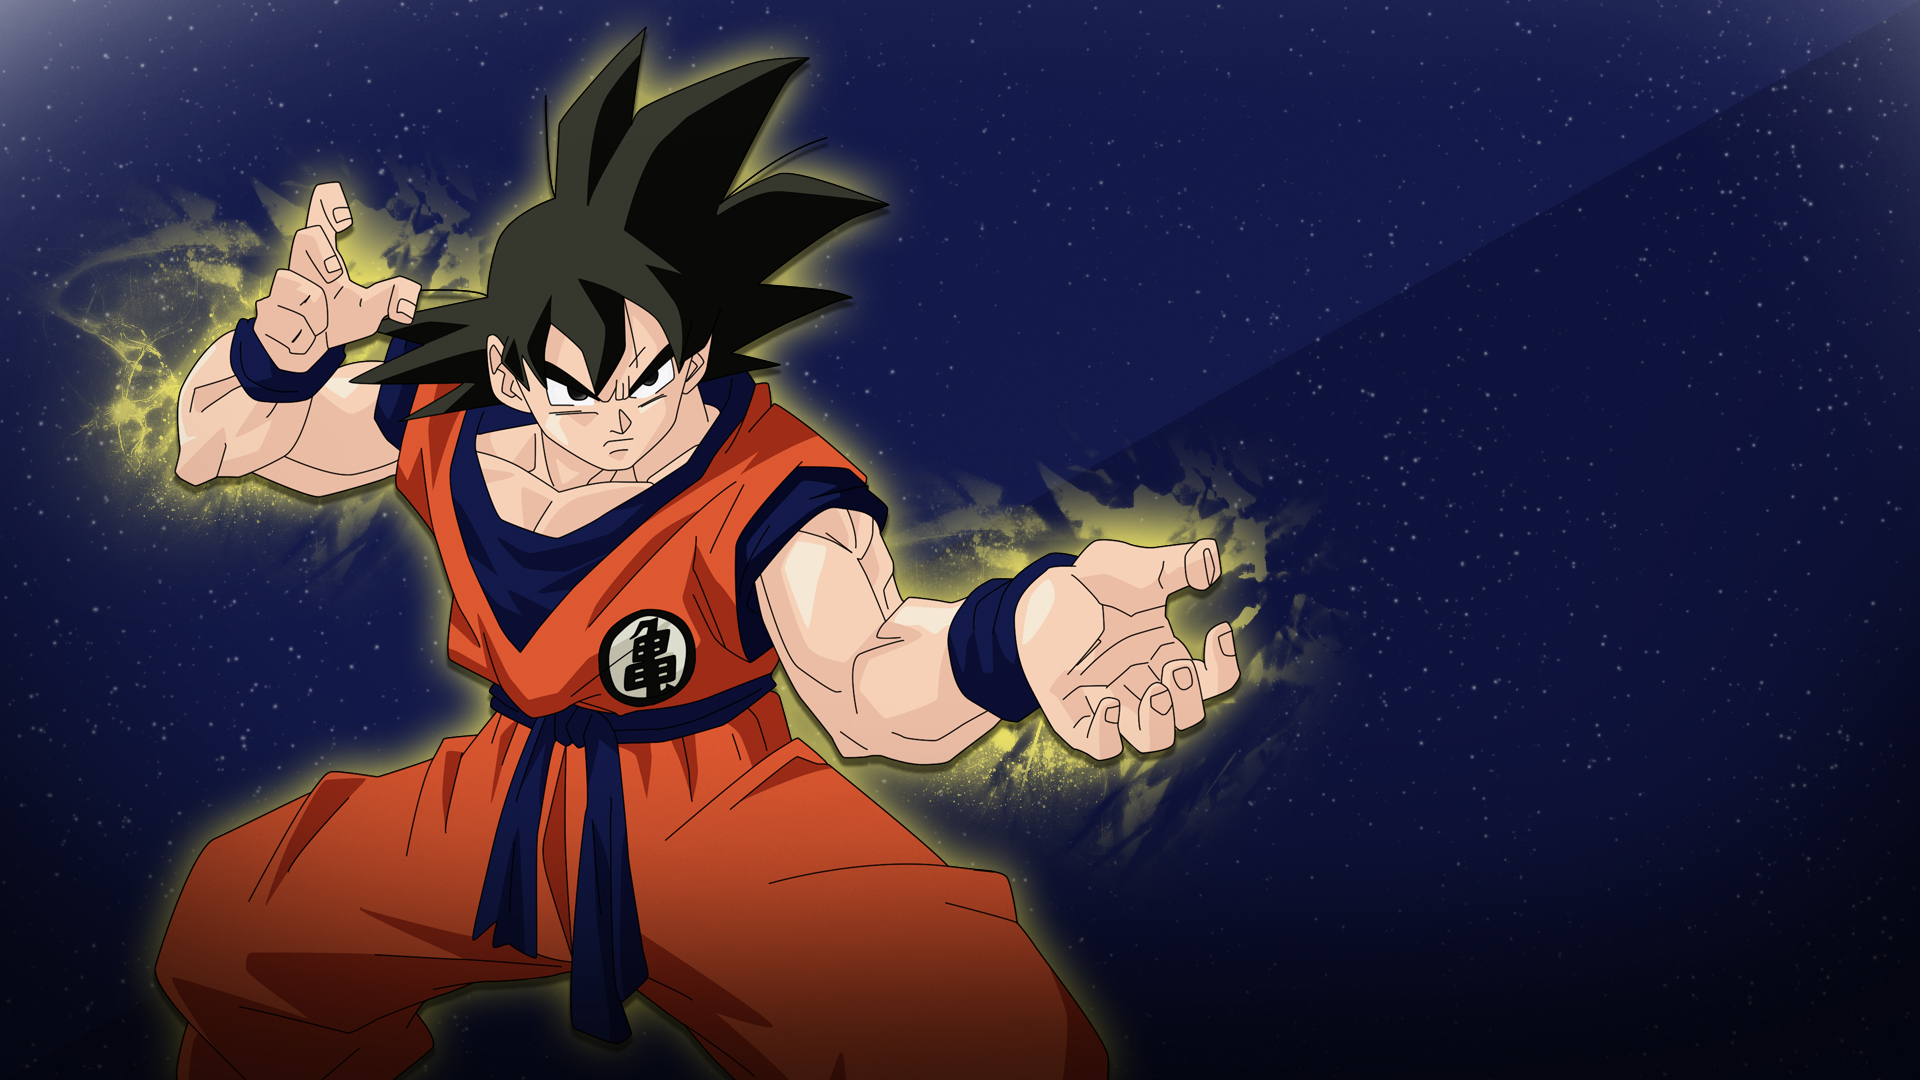 Goku Space Time Wallpaper 1080p By Ashesrising13 On Deviantart